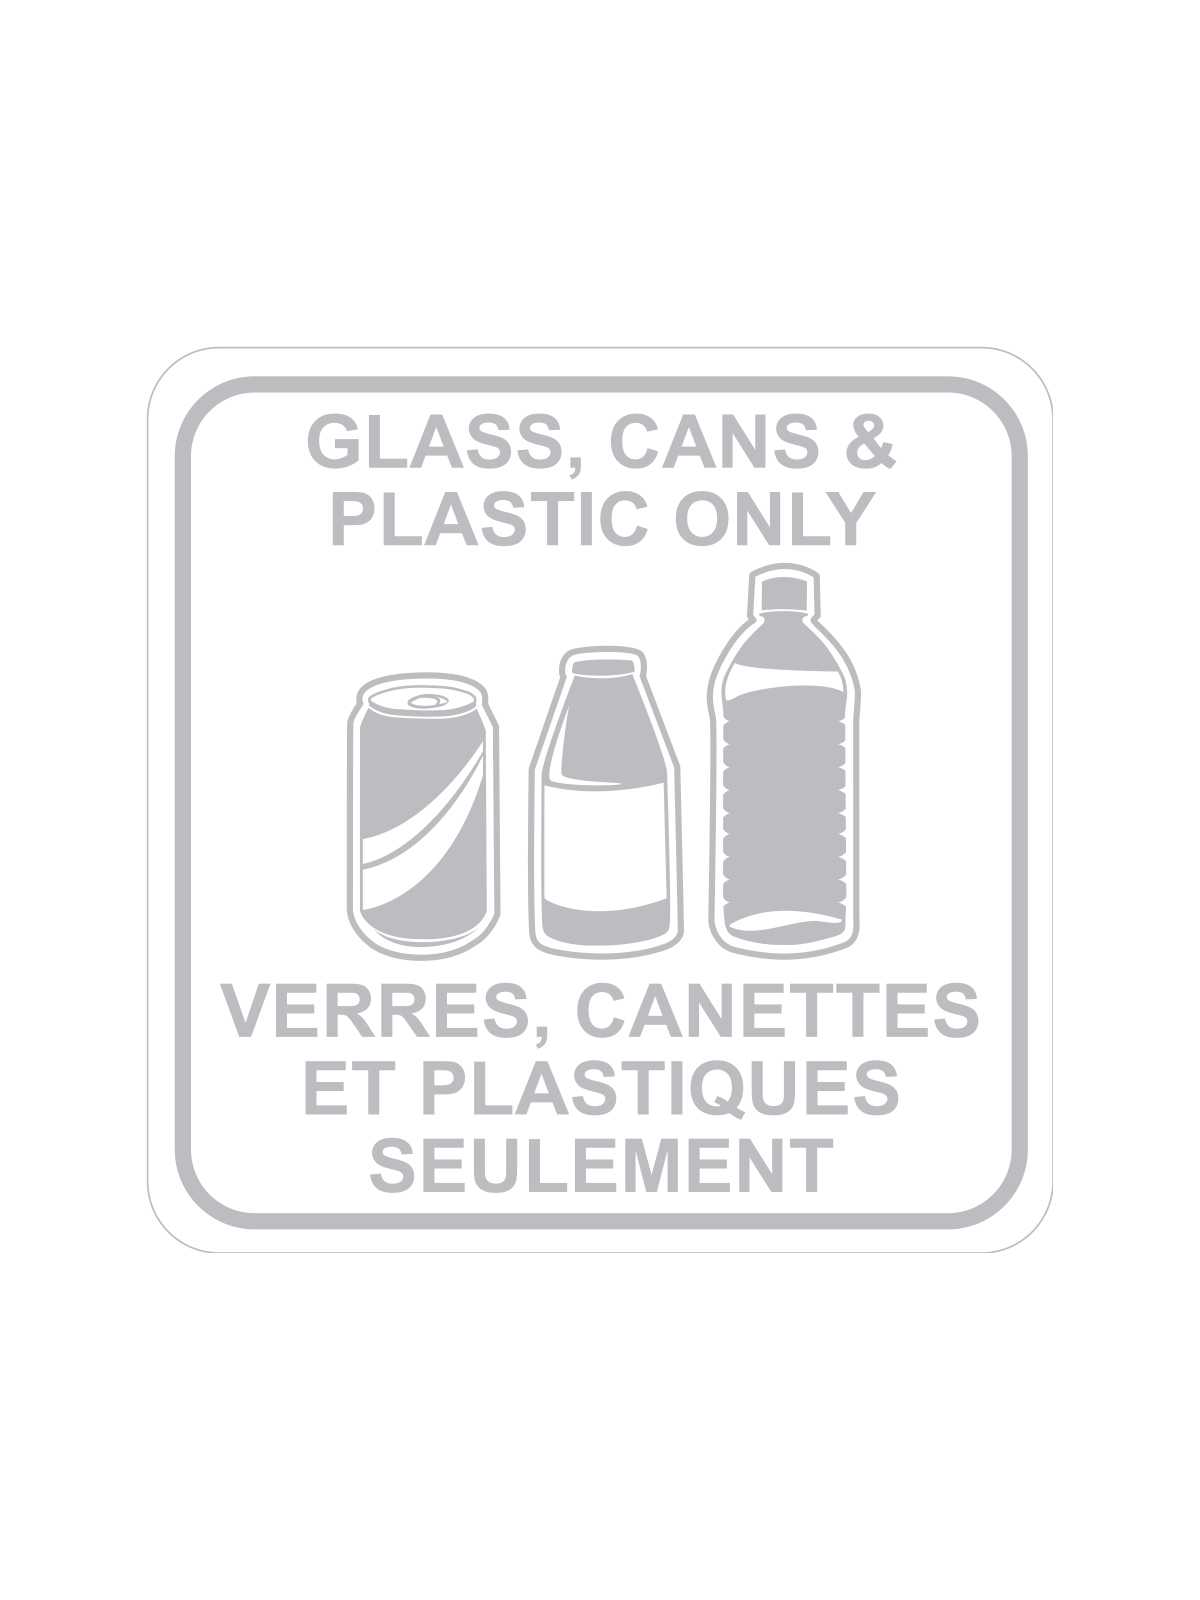 SQUARE LABEL GLASS, CANS & PLASTIC ONLY - ENG/FRE title=